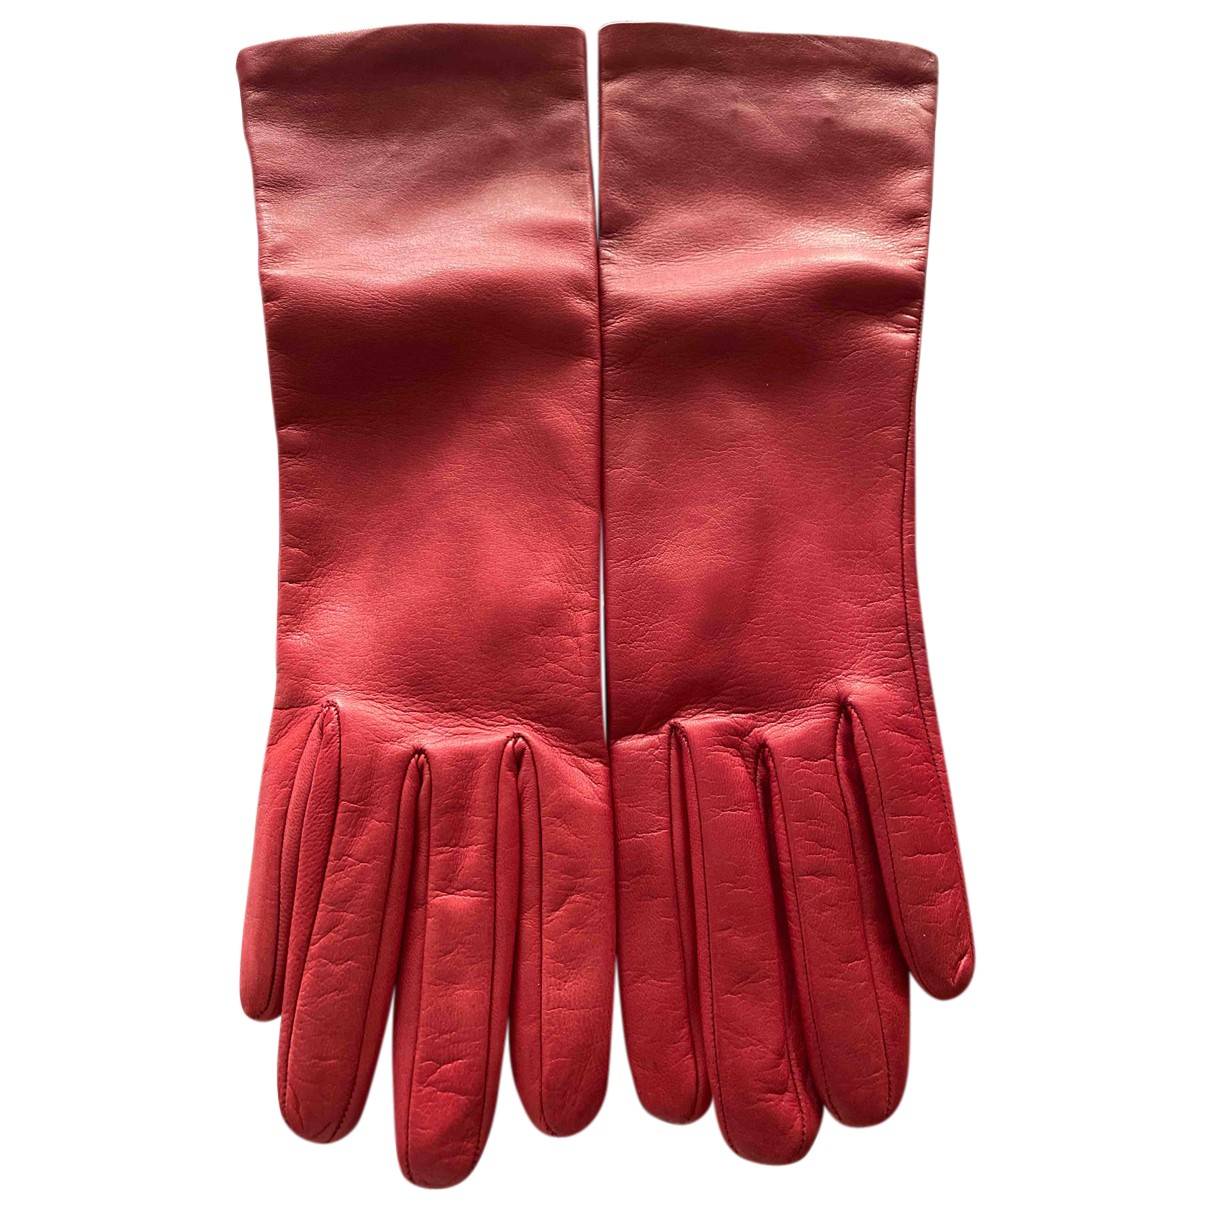 Prada N Red Leather Gloves for Women 6.5 Inches